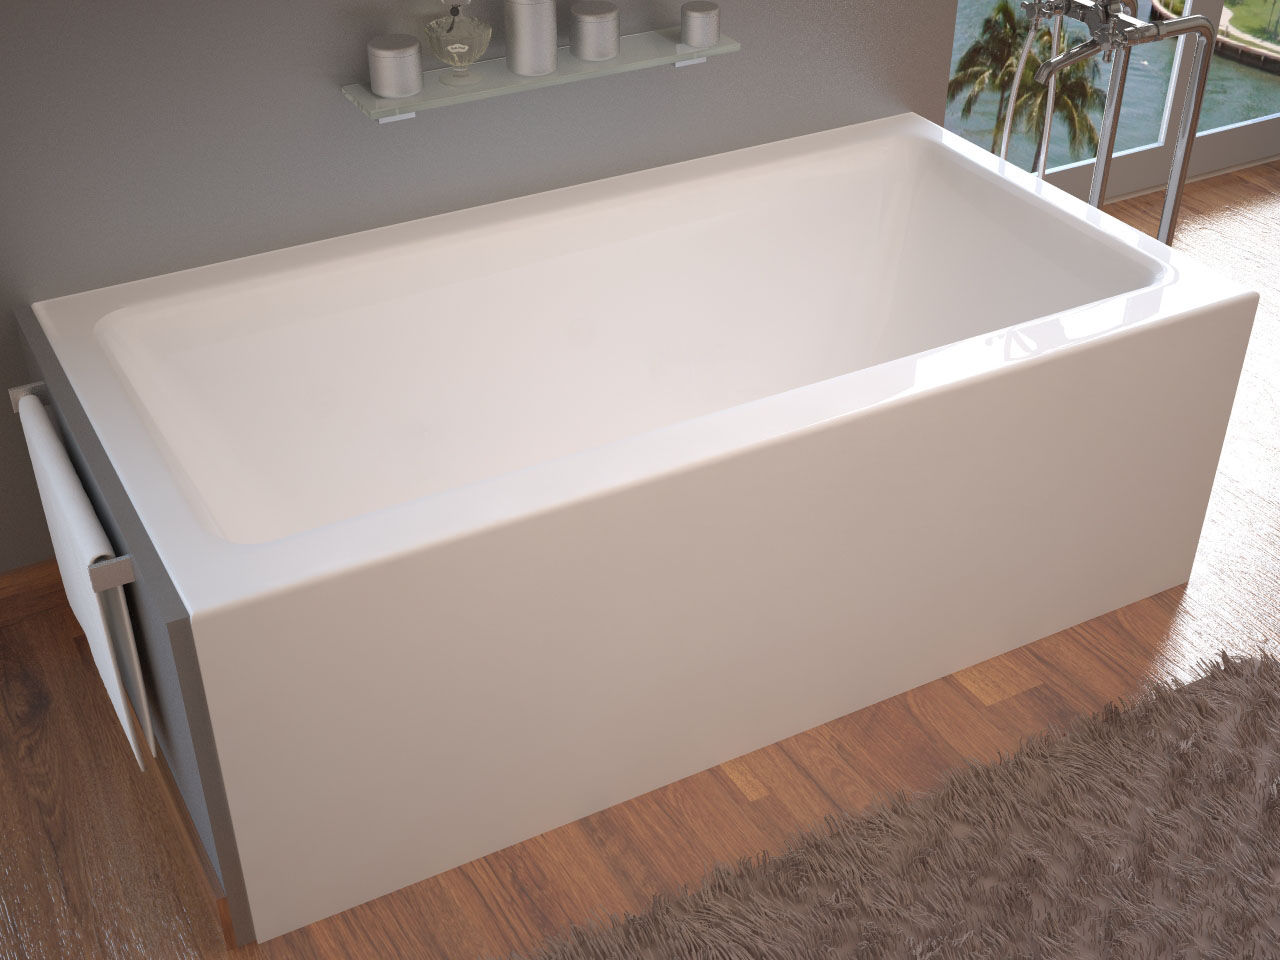 60 Inch Soaker Bathtubs - Bathtub Ideas